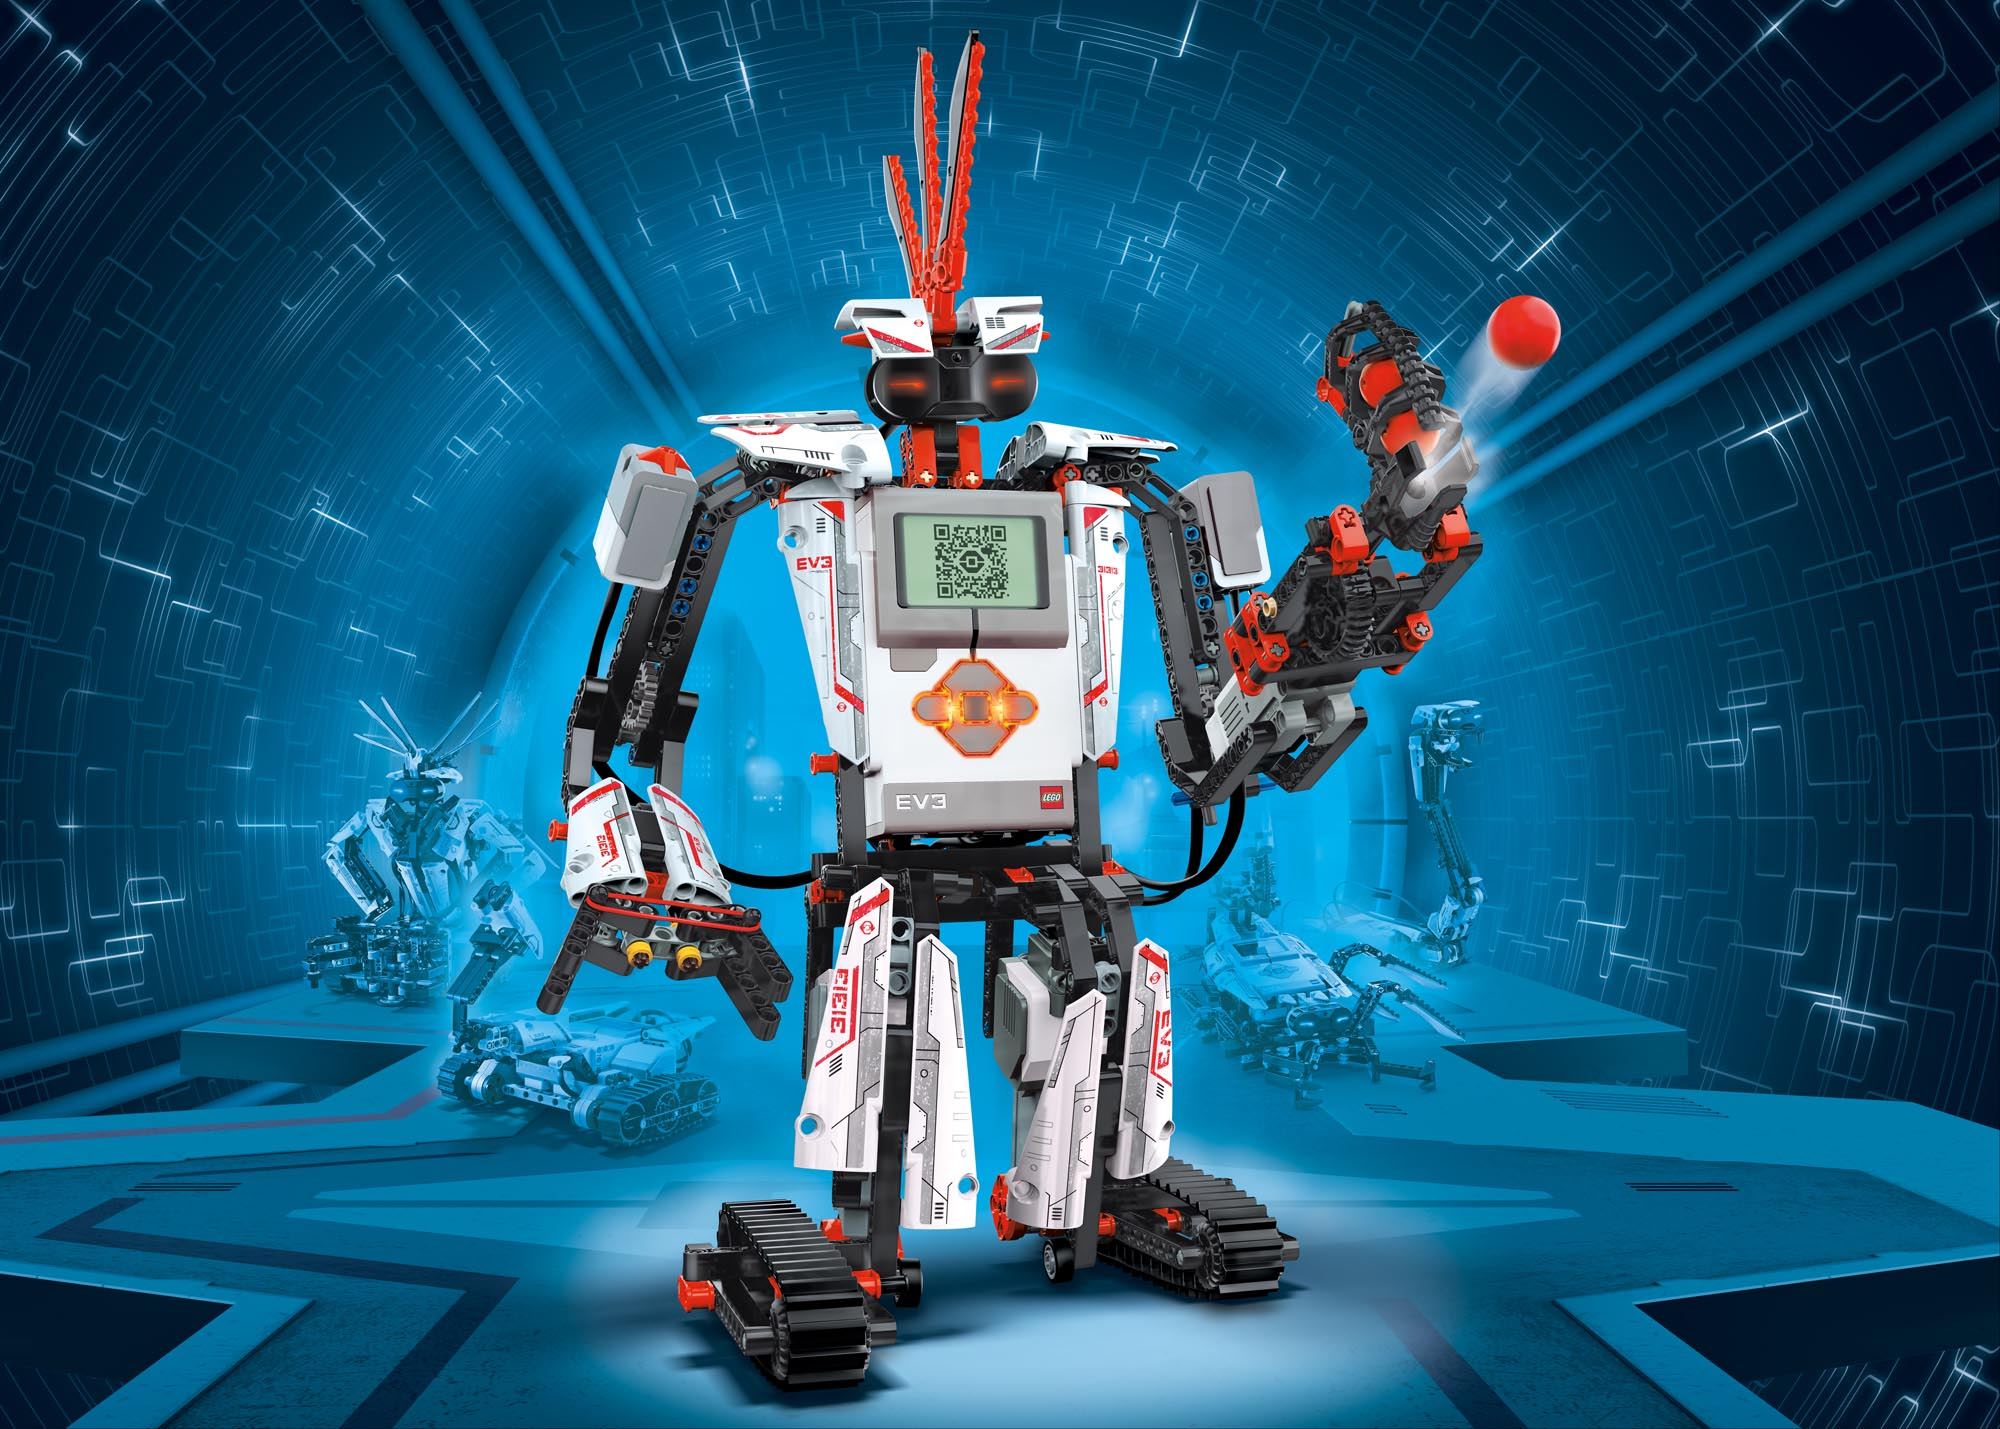 nxt mindstorm projects